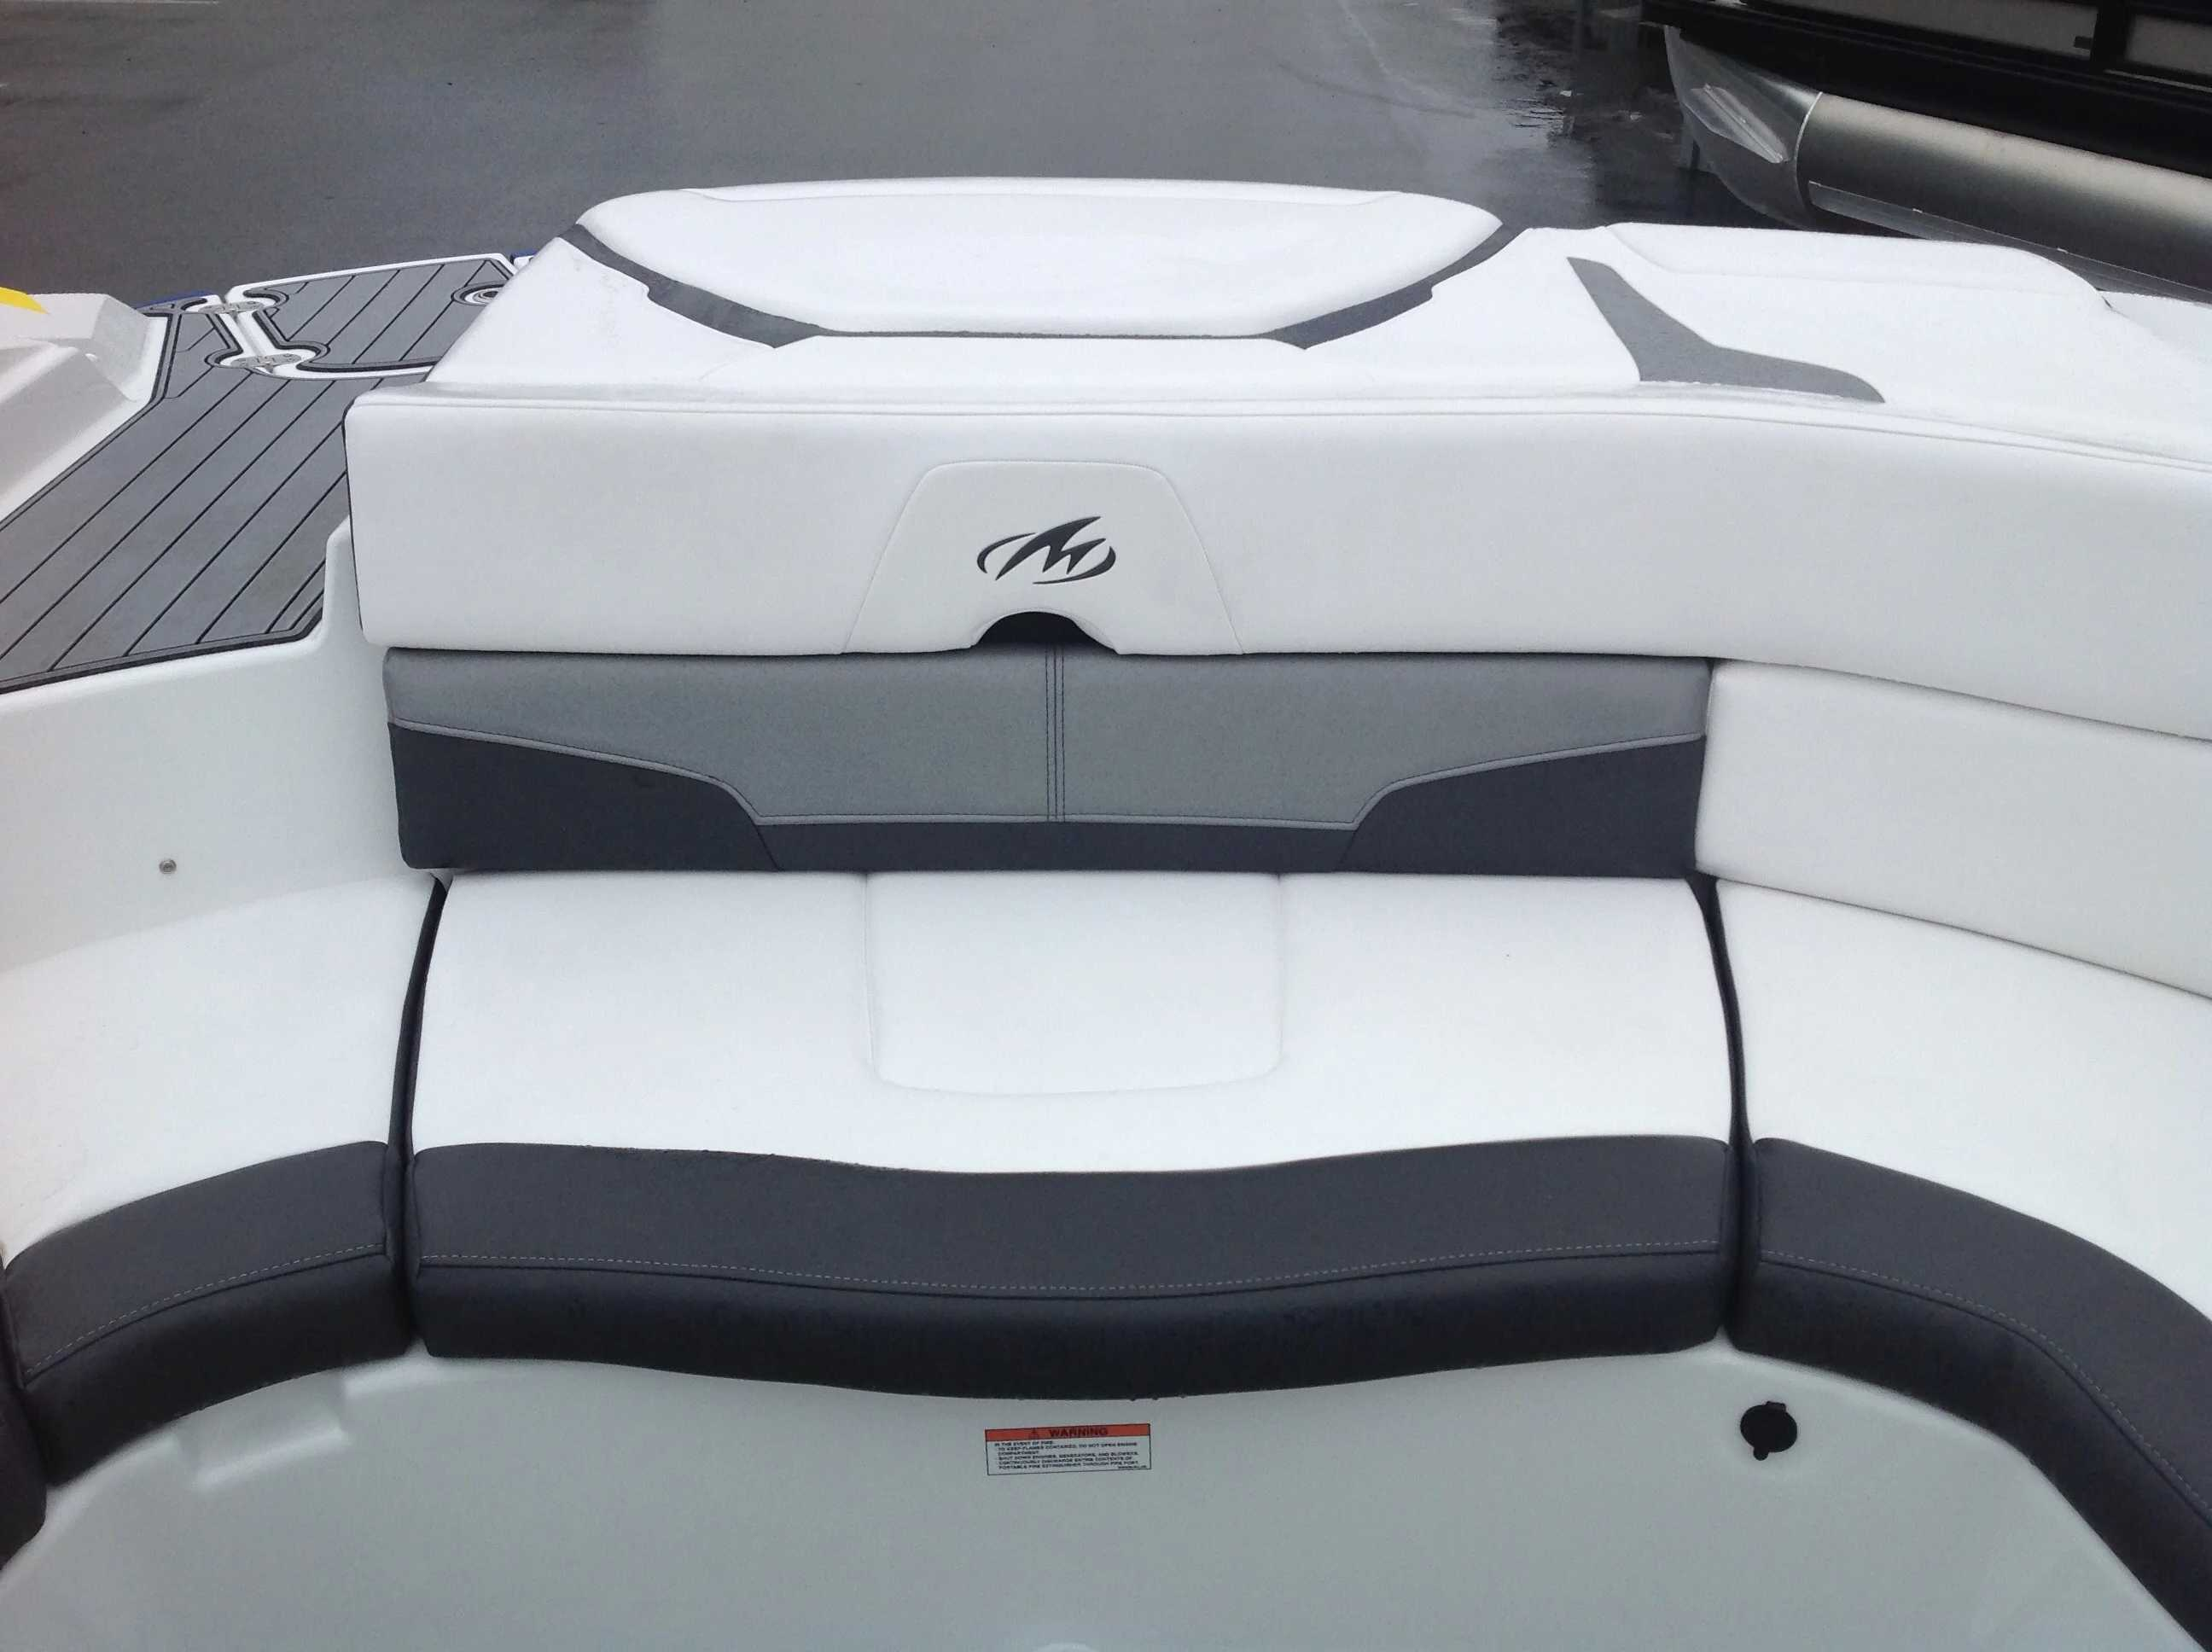 2022 Monterey boat for sale, model of the boat is 224FS & Image # 7 of 11